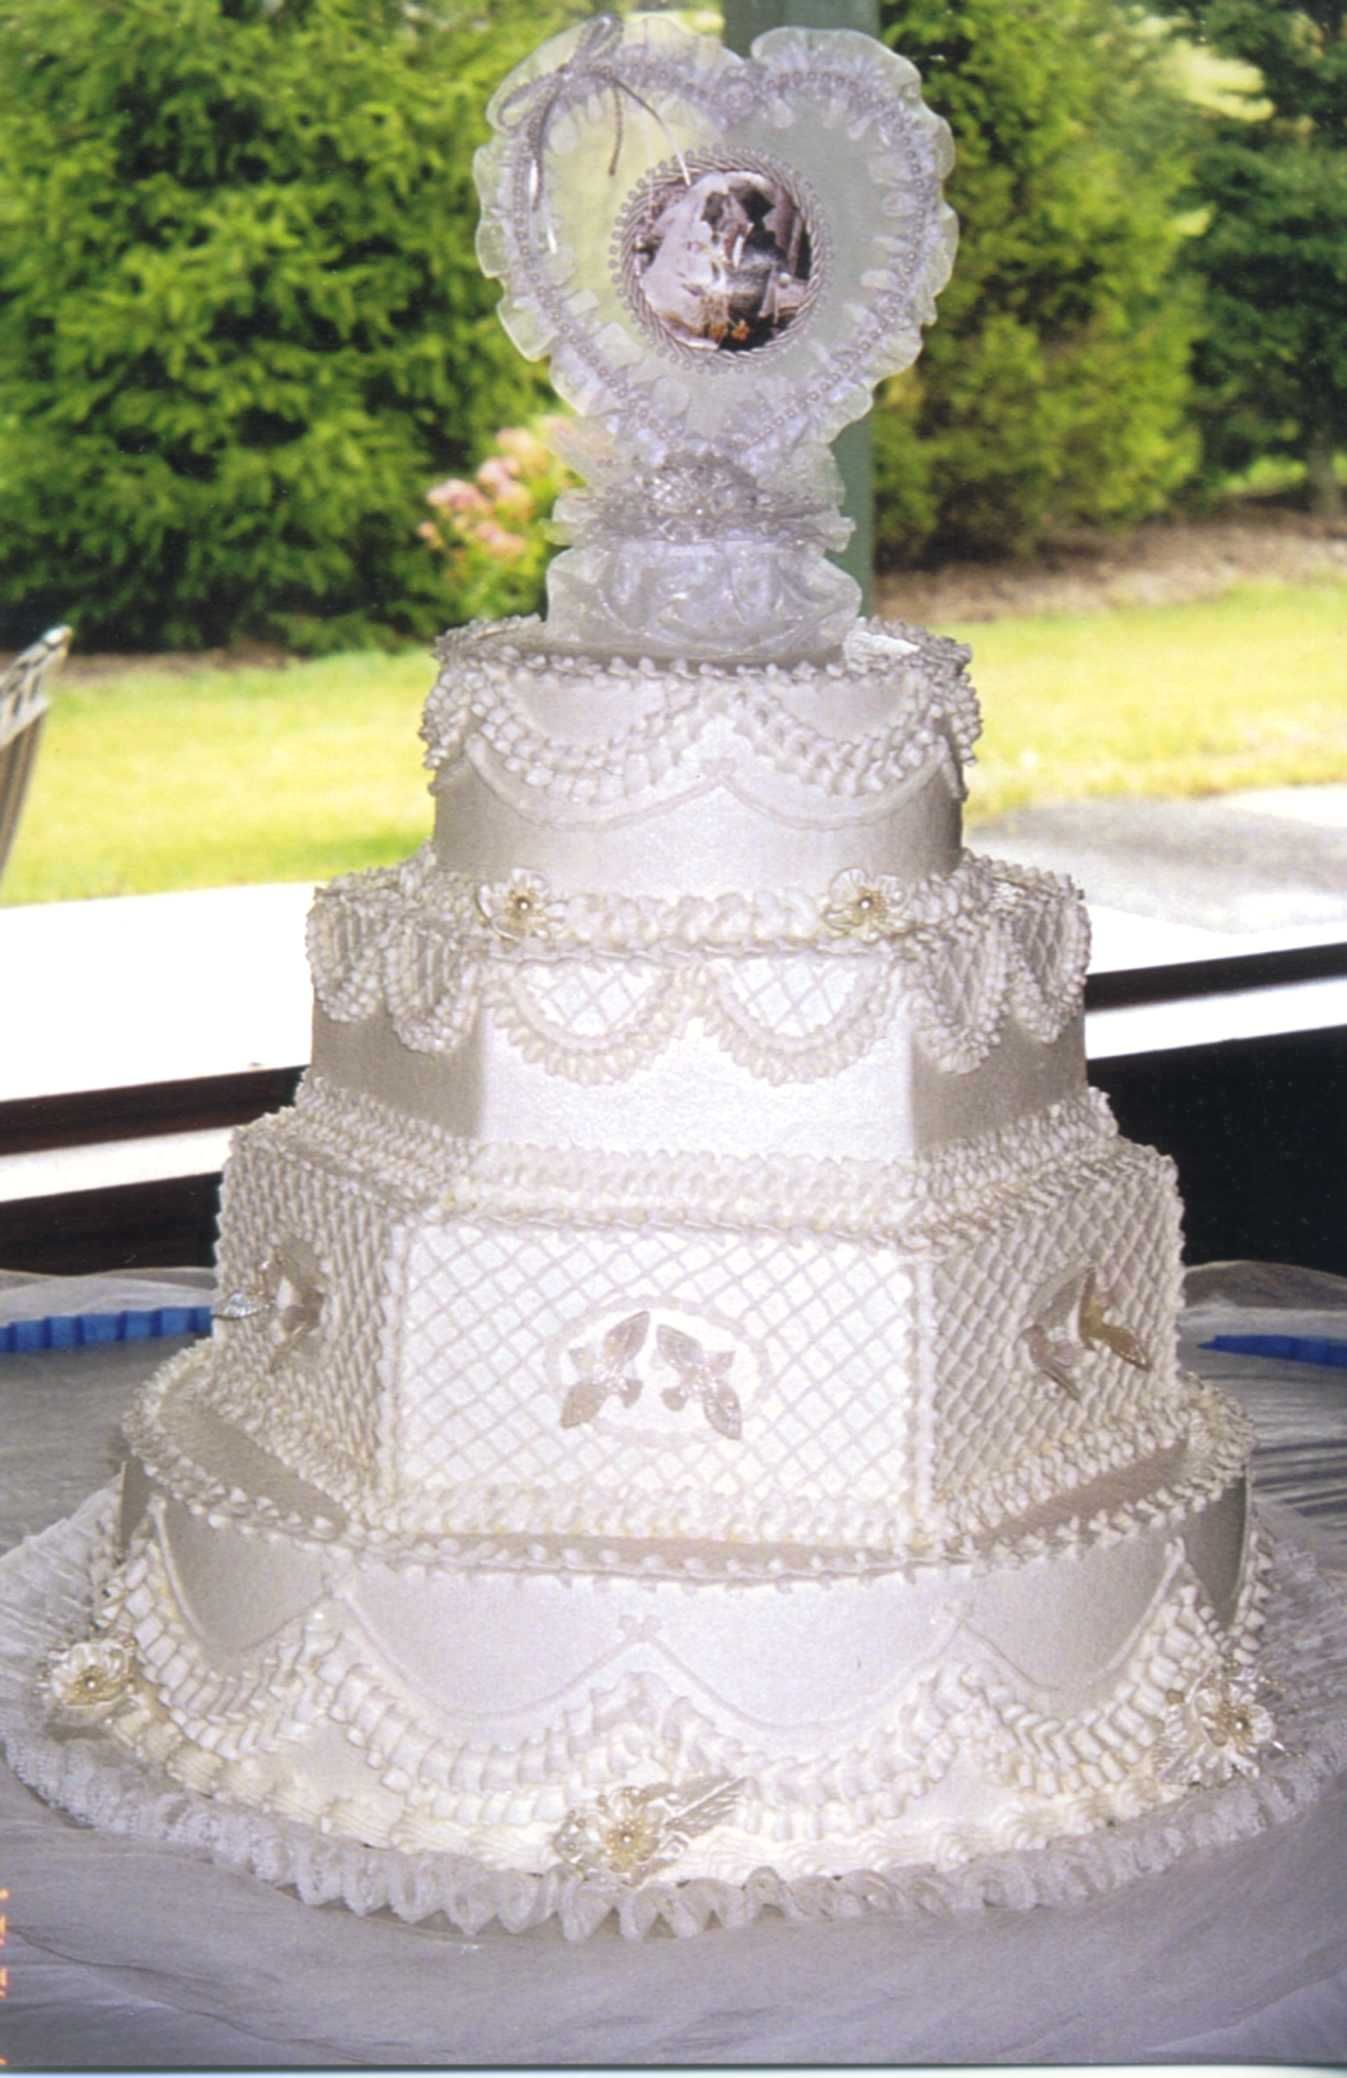 Other / Mixed Shaped Wedding Cakes - Wedding cake iced and accented ...